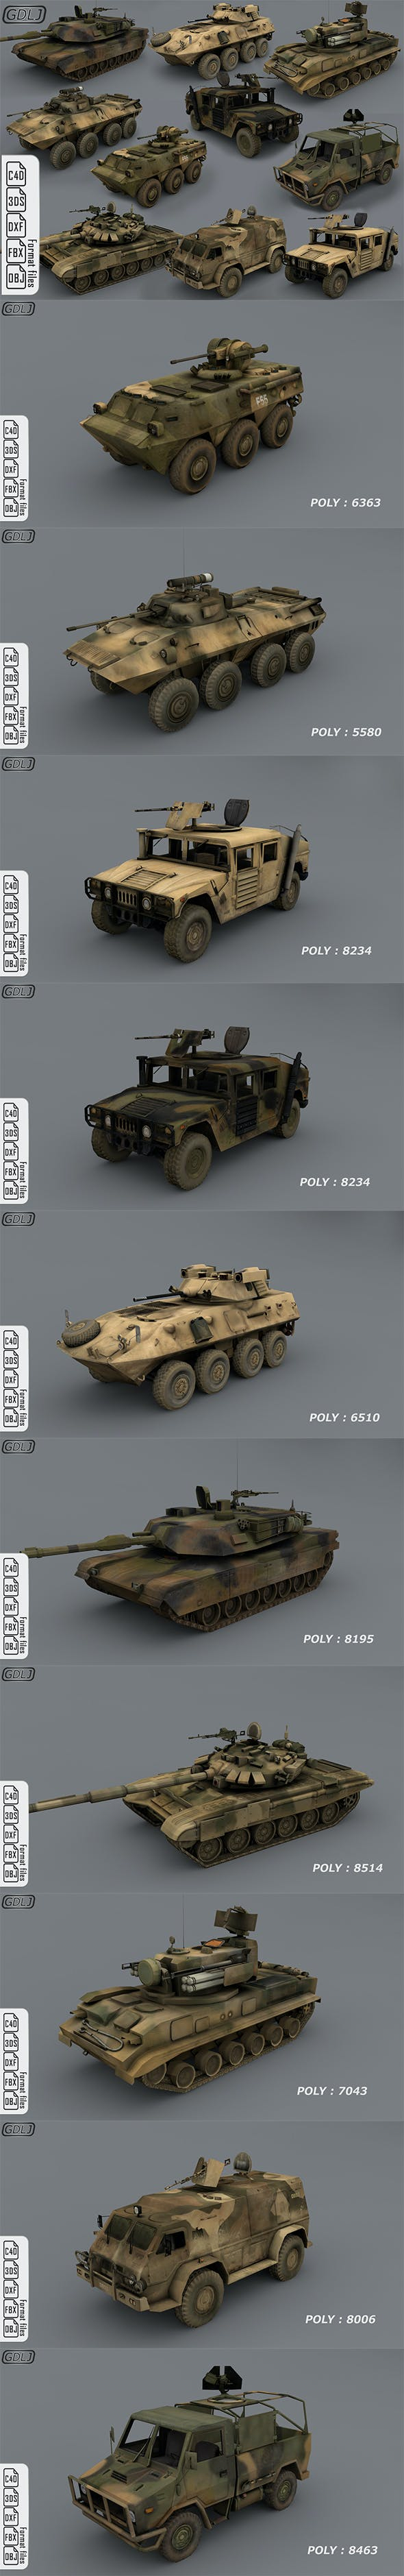 Army vehicles - Ready for games [ Low poly ] - 3DOcean Item for Sale